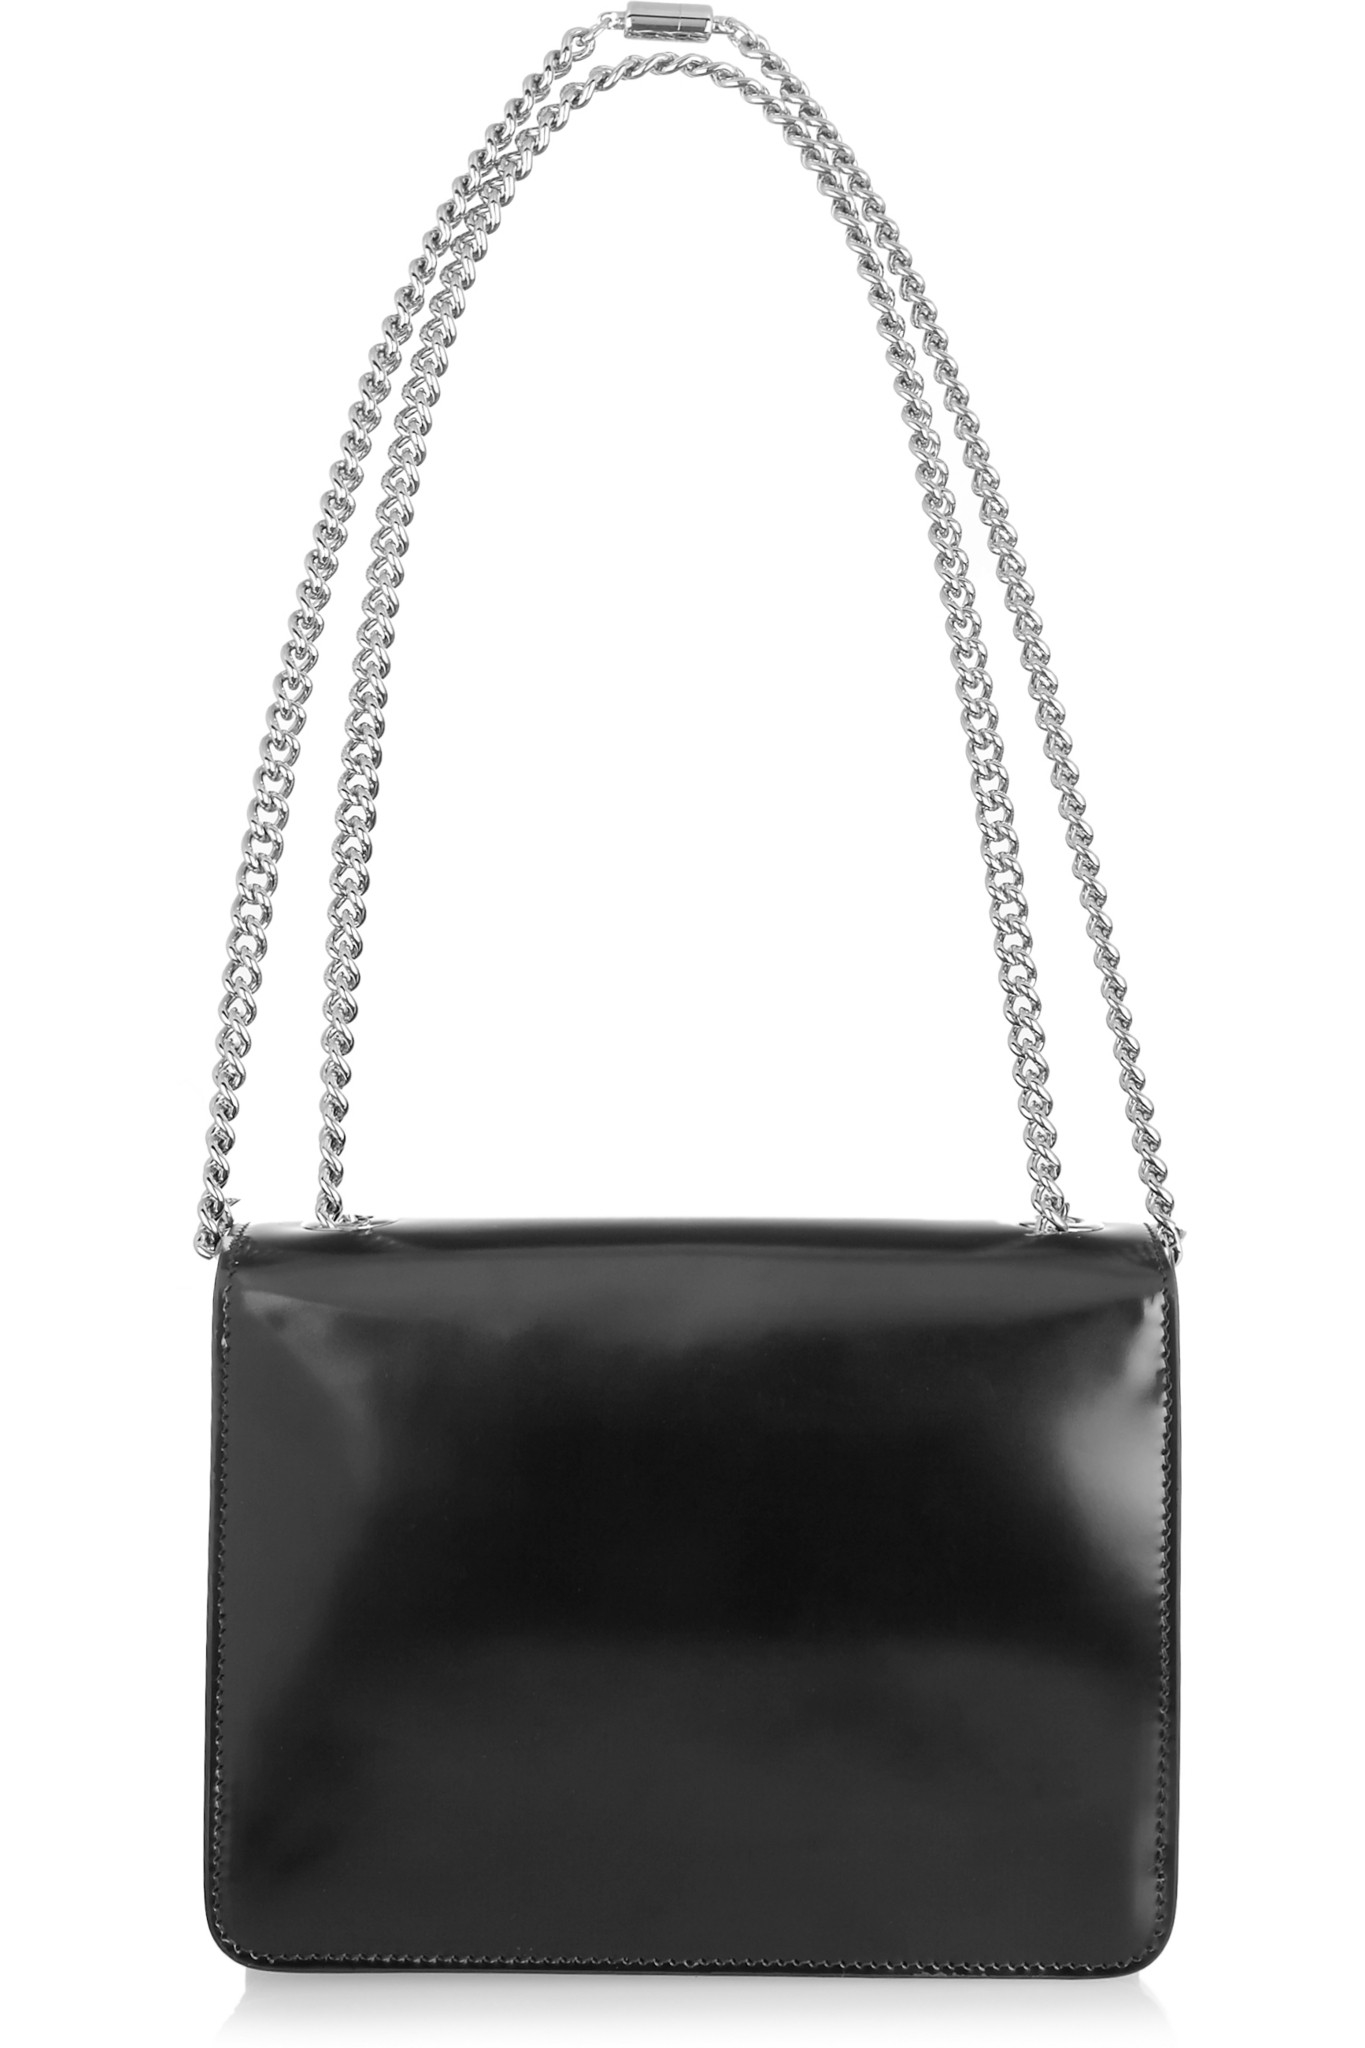 be61b2d6ee46bf Gucci Linea B Small Leather Shoulder Bag in Black - Lyst